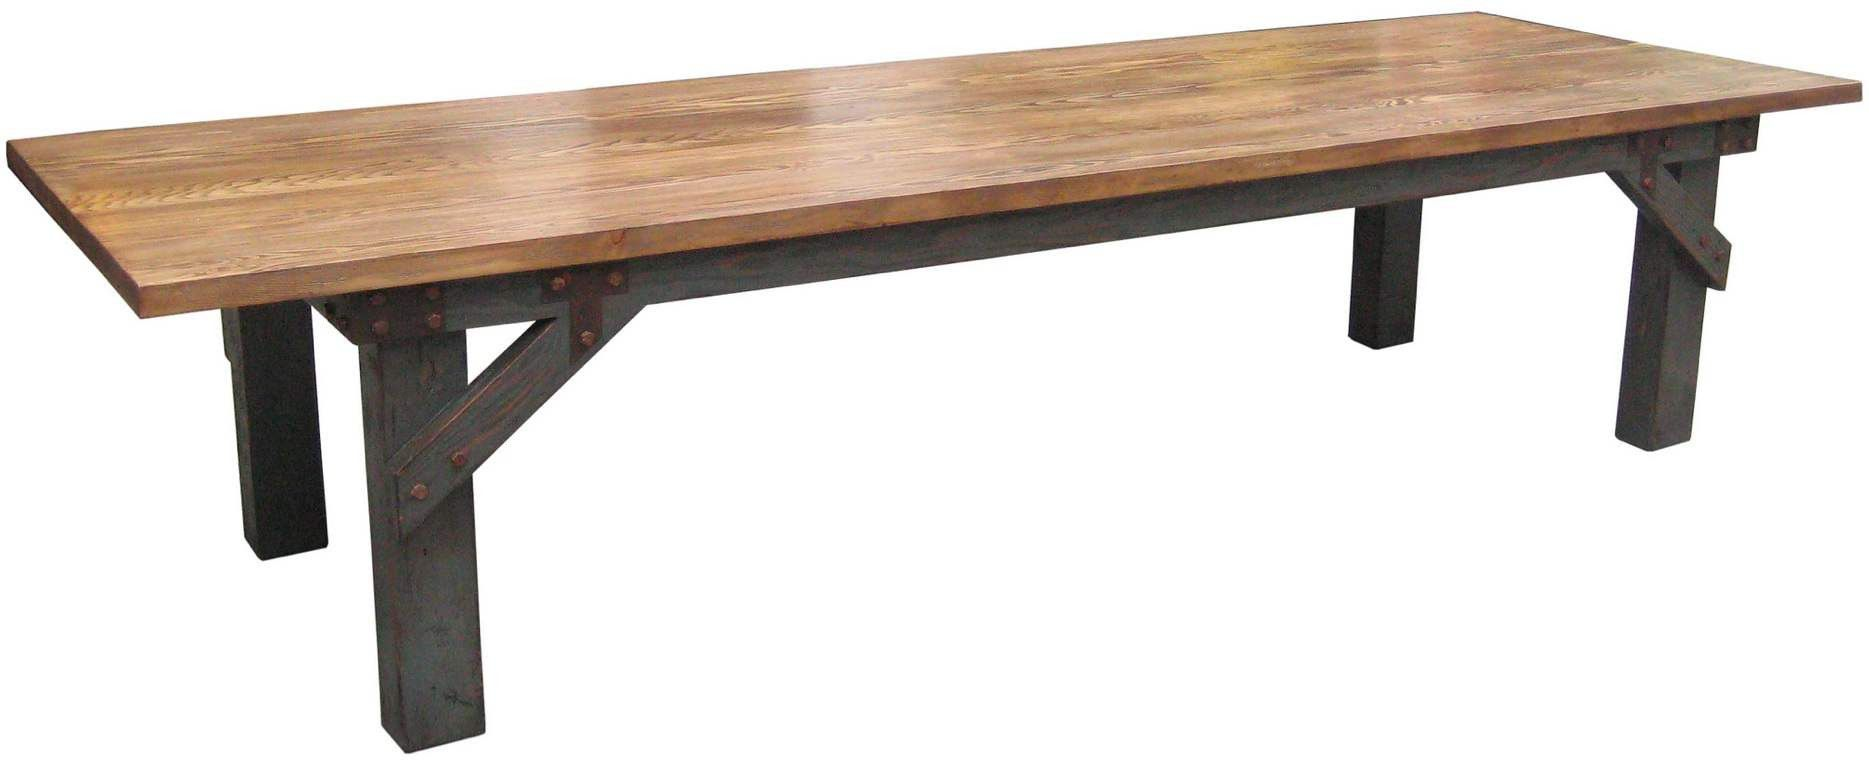 Industrial Work Bench Dining Table In Reclaimed Wood